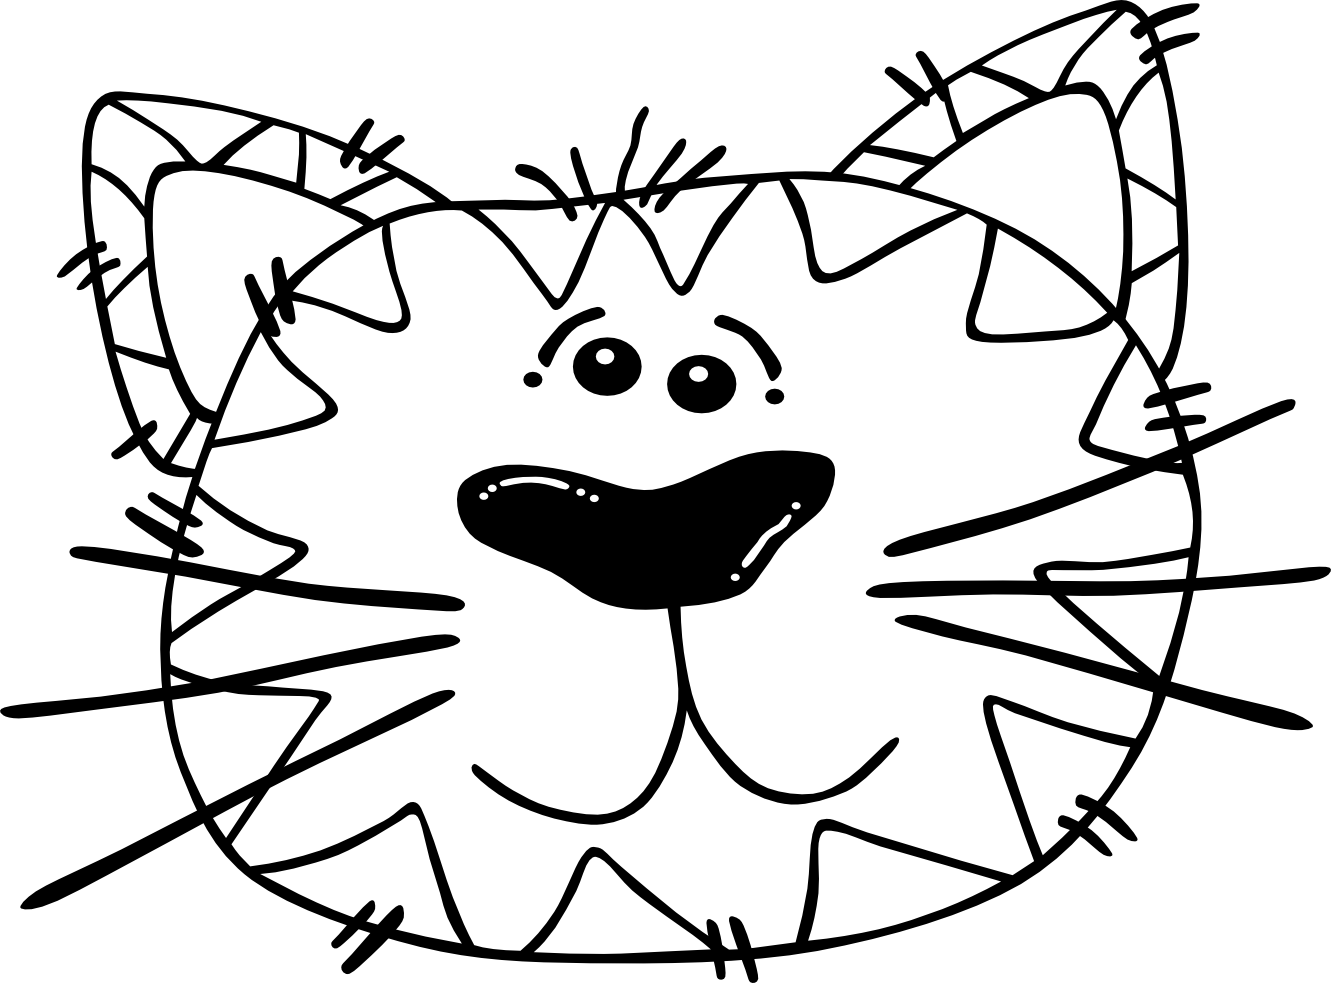 Coloring clipart cat. Weird face page fascinating